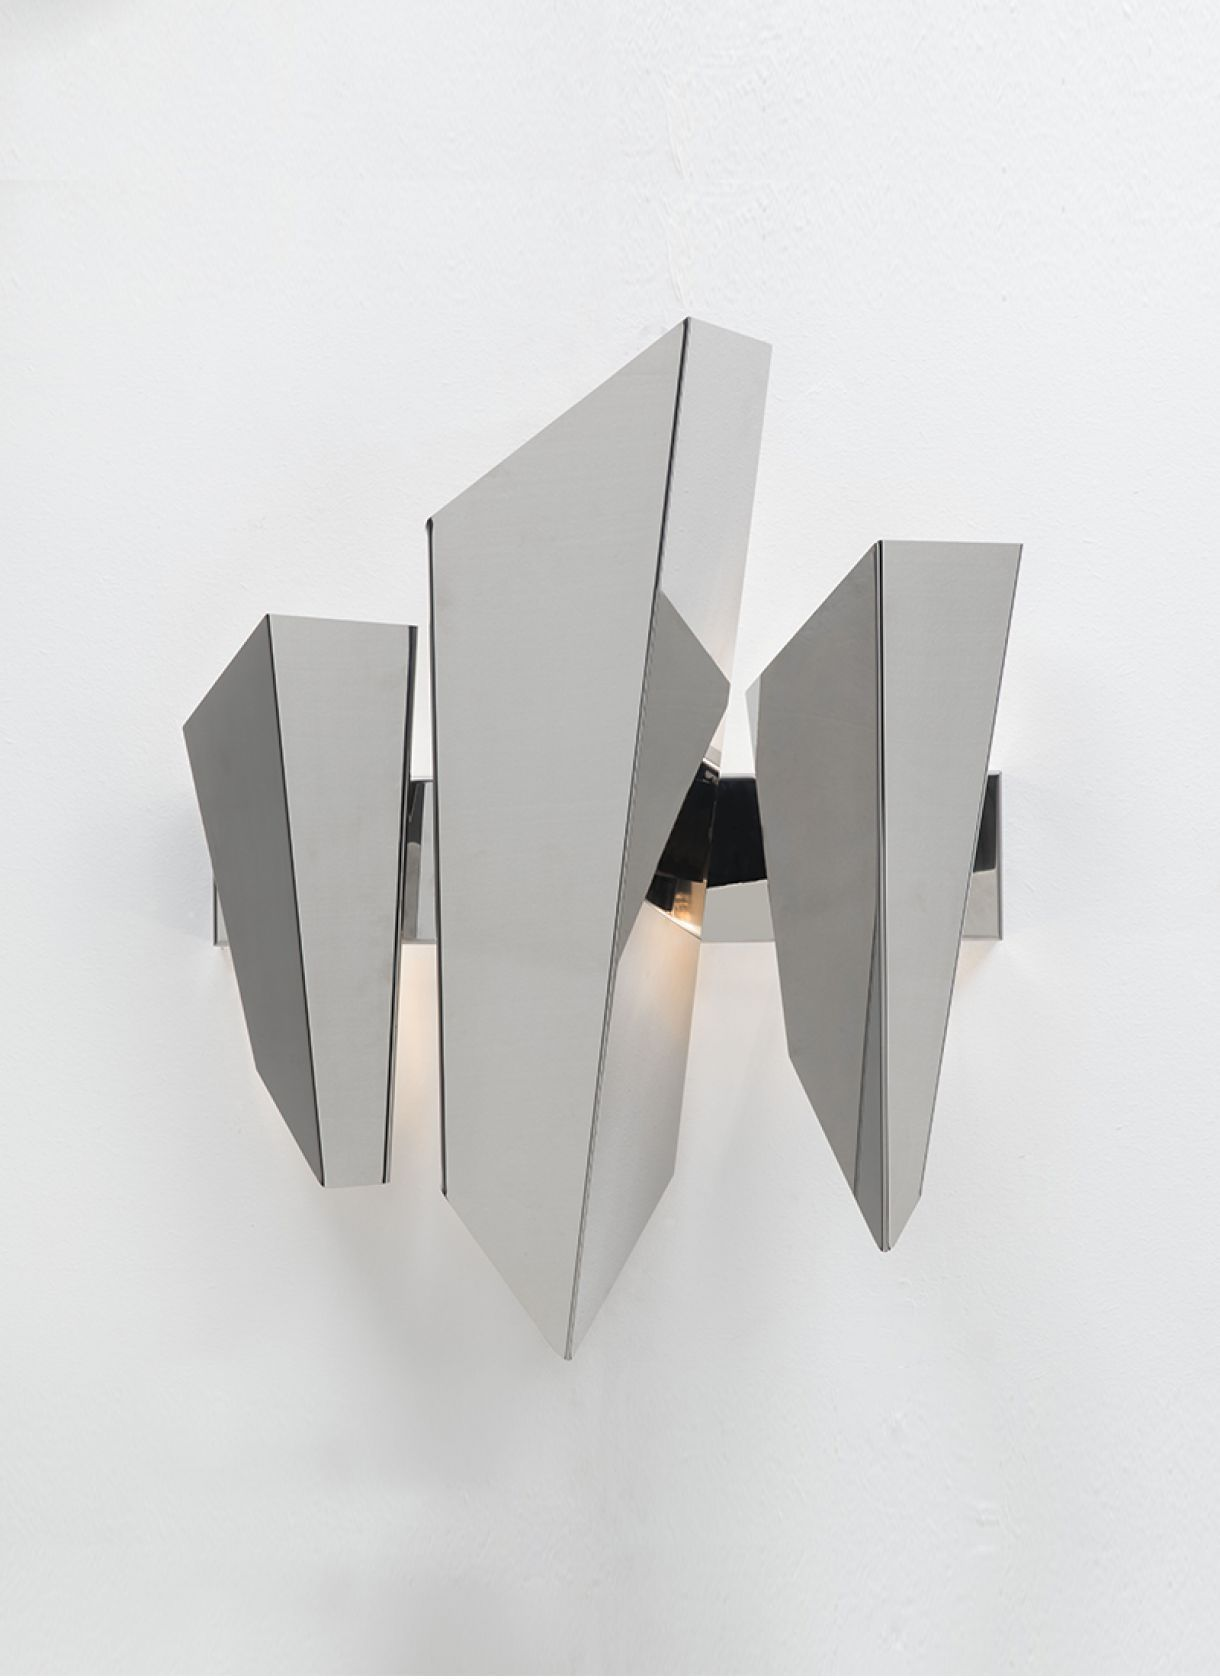 Wright - Wall lamp 2 - element # 2